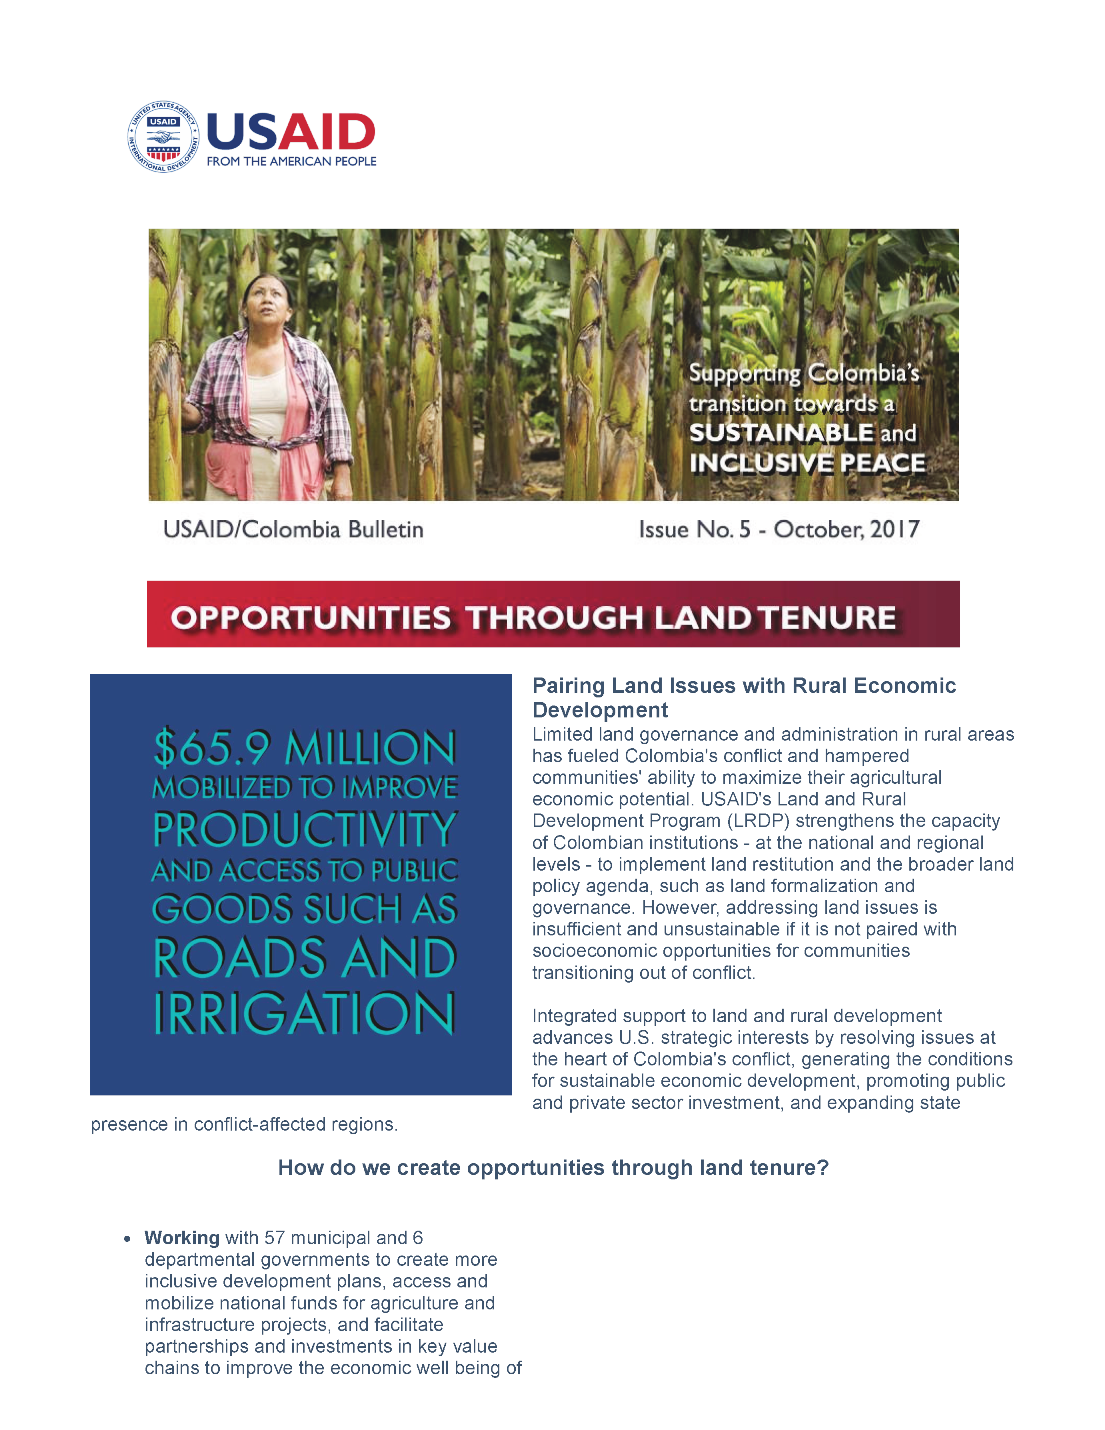 Opportunities Through Land Tenure